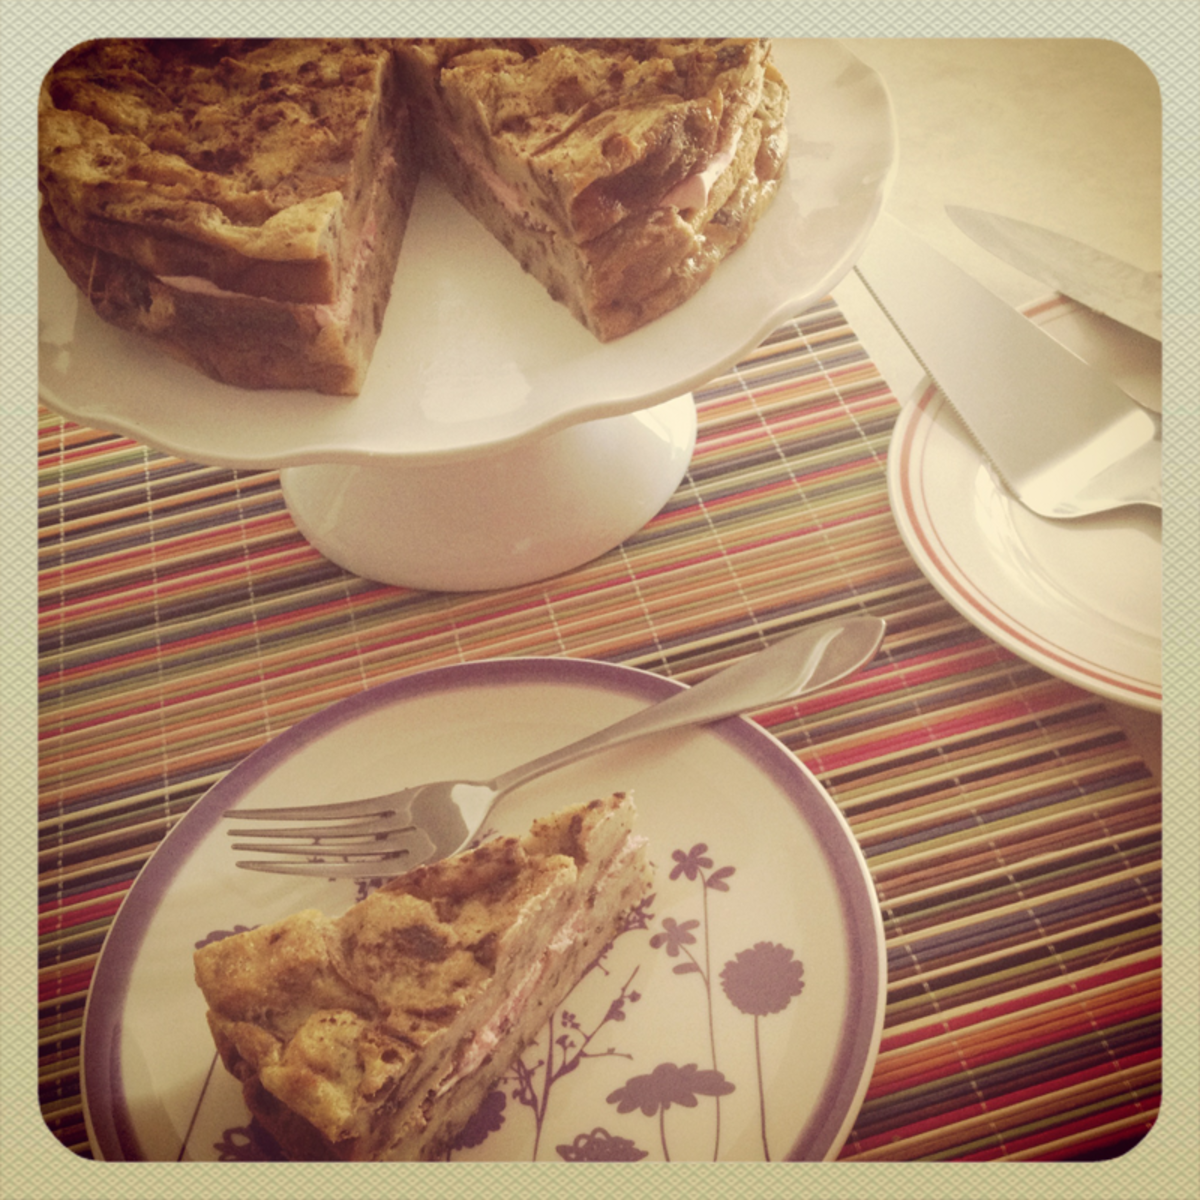 How to Make Cinnamon Raisin Bread Pudding Cake